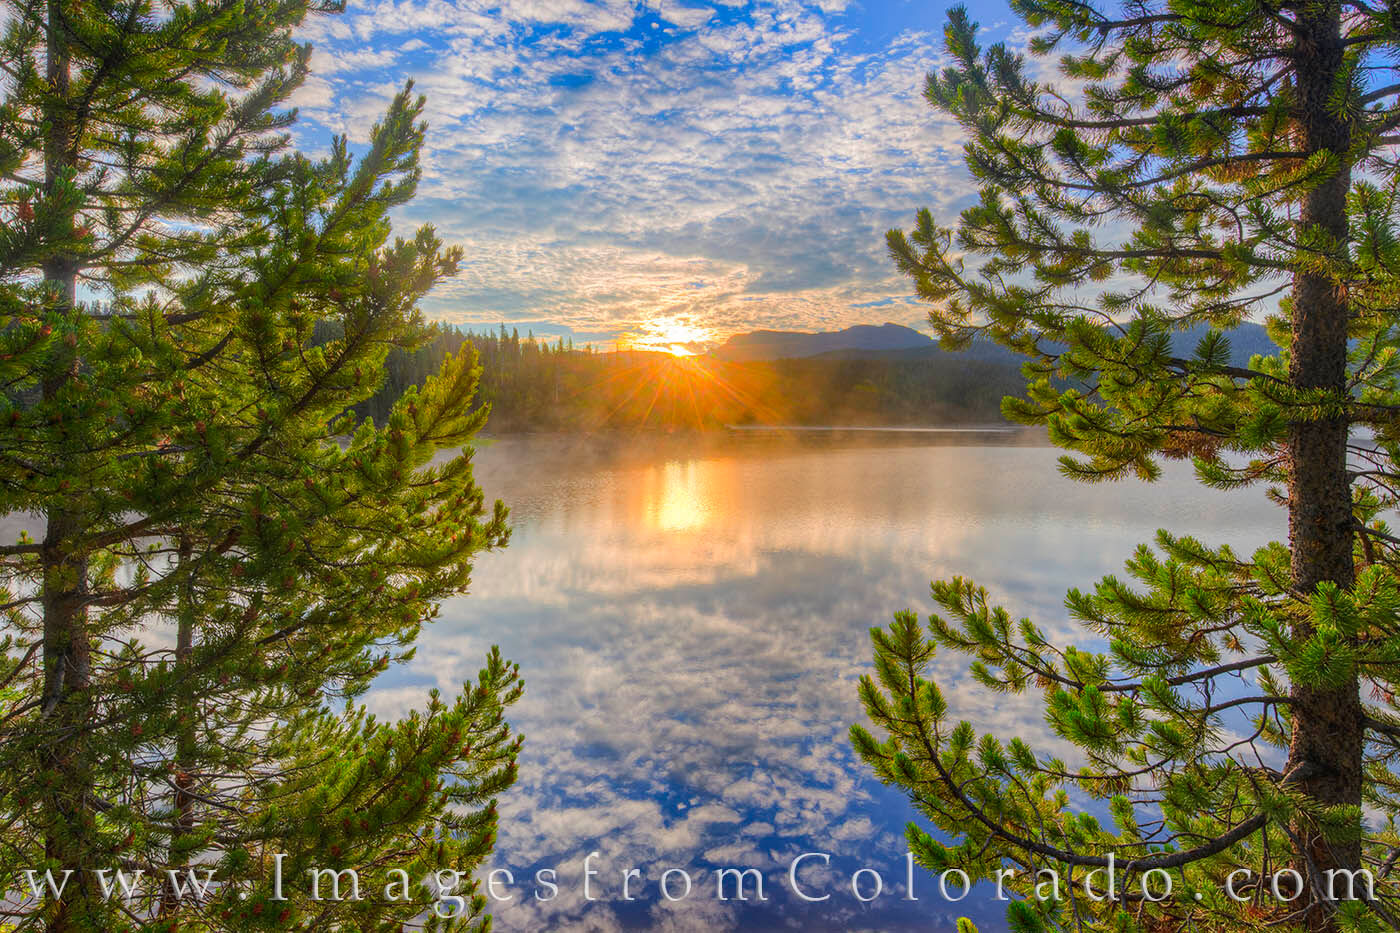 A beautiful morning greets the calm waters of Meadow Creek Reservoir in Grand County, Colorado.